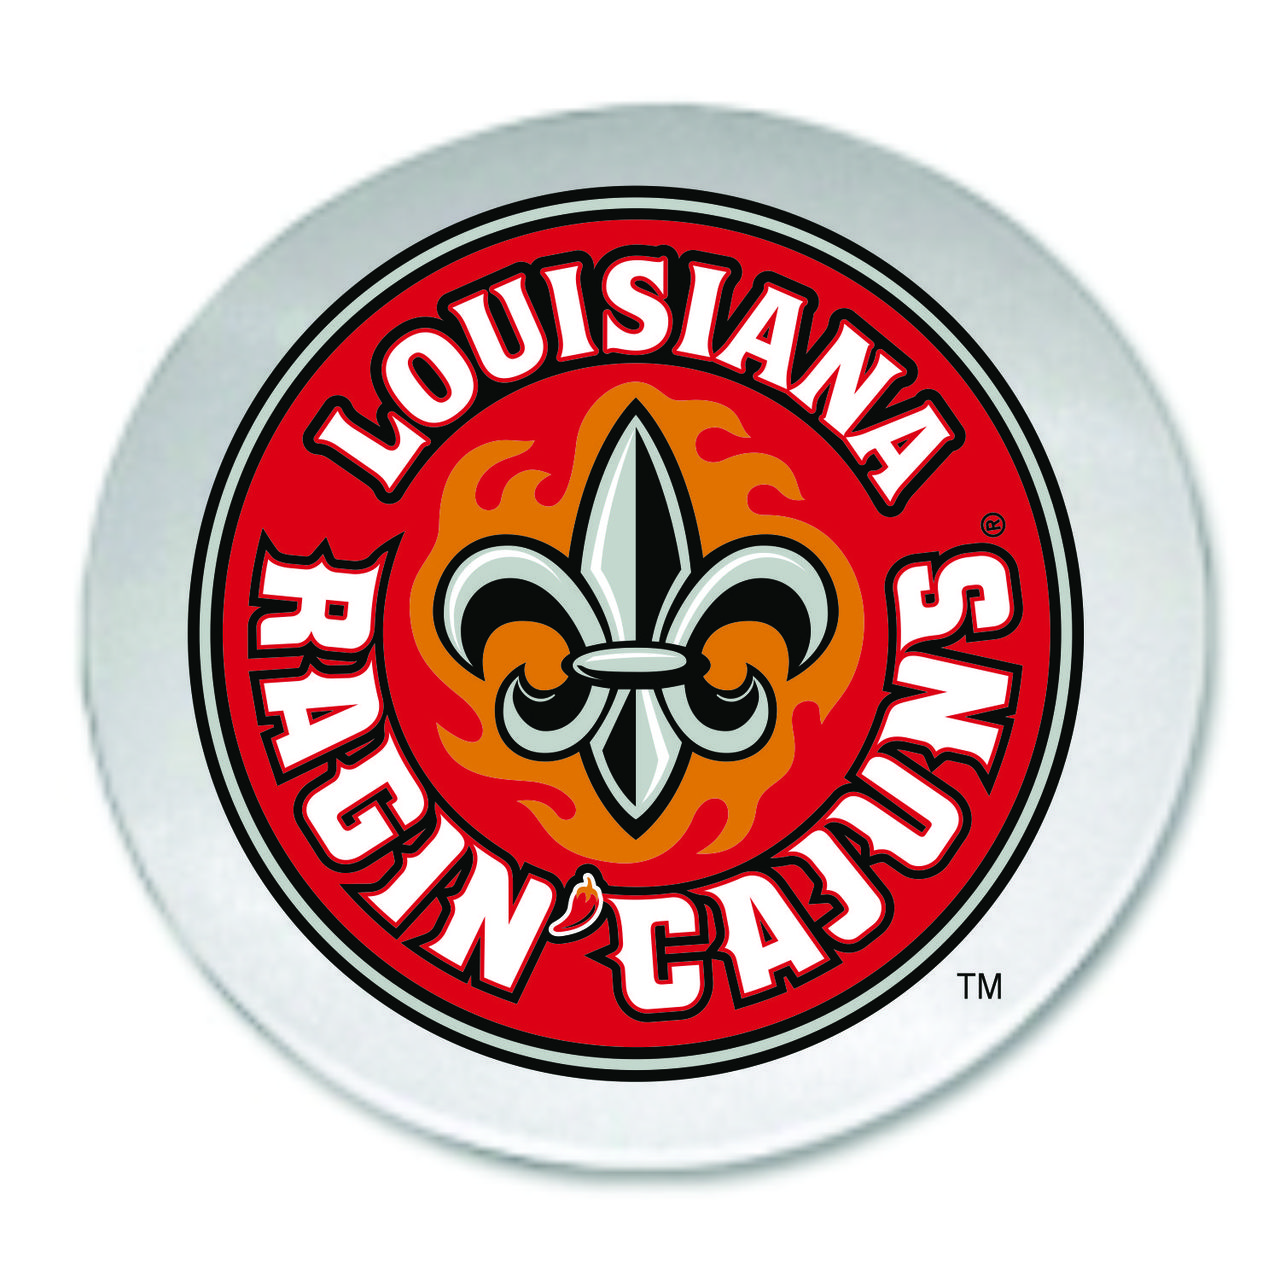 Louisiana Ragin' Cajuns Round Glass Cutting Board, 7.75